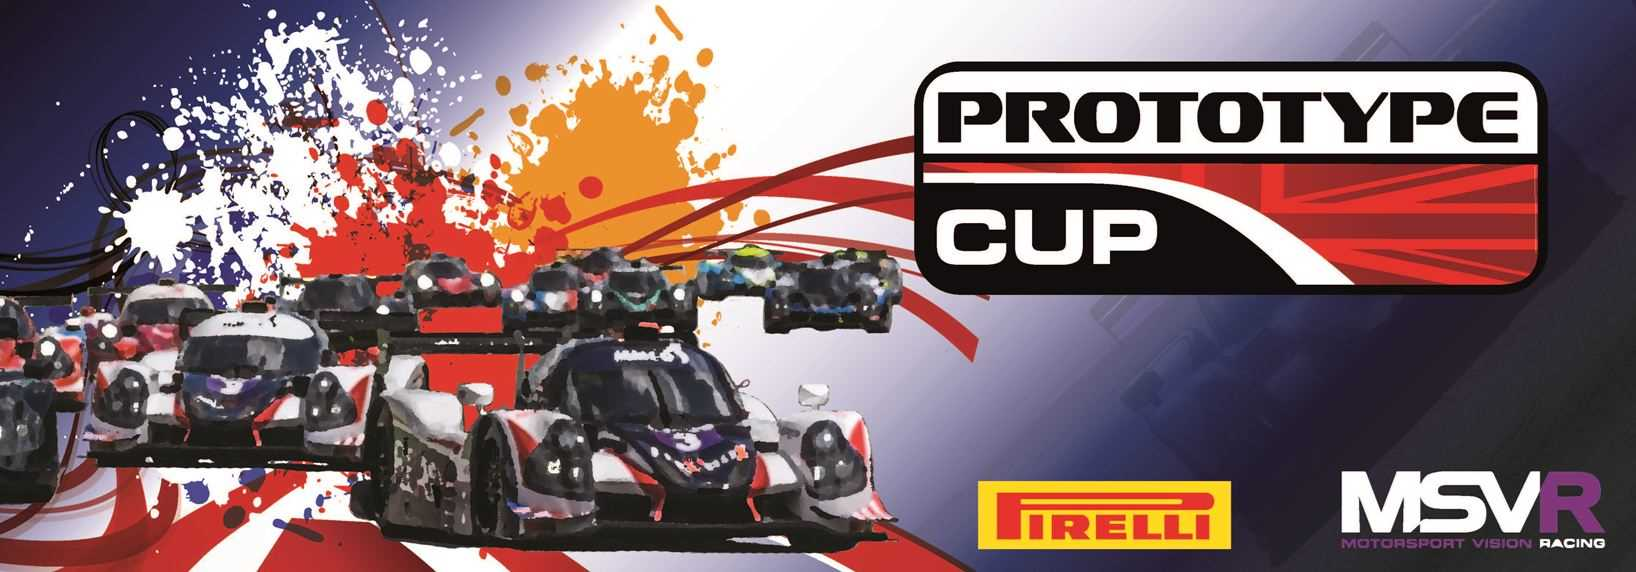 Pirelli Chosen as Sole Supplier for Prototype Cup